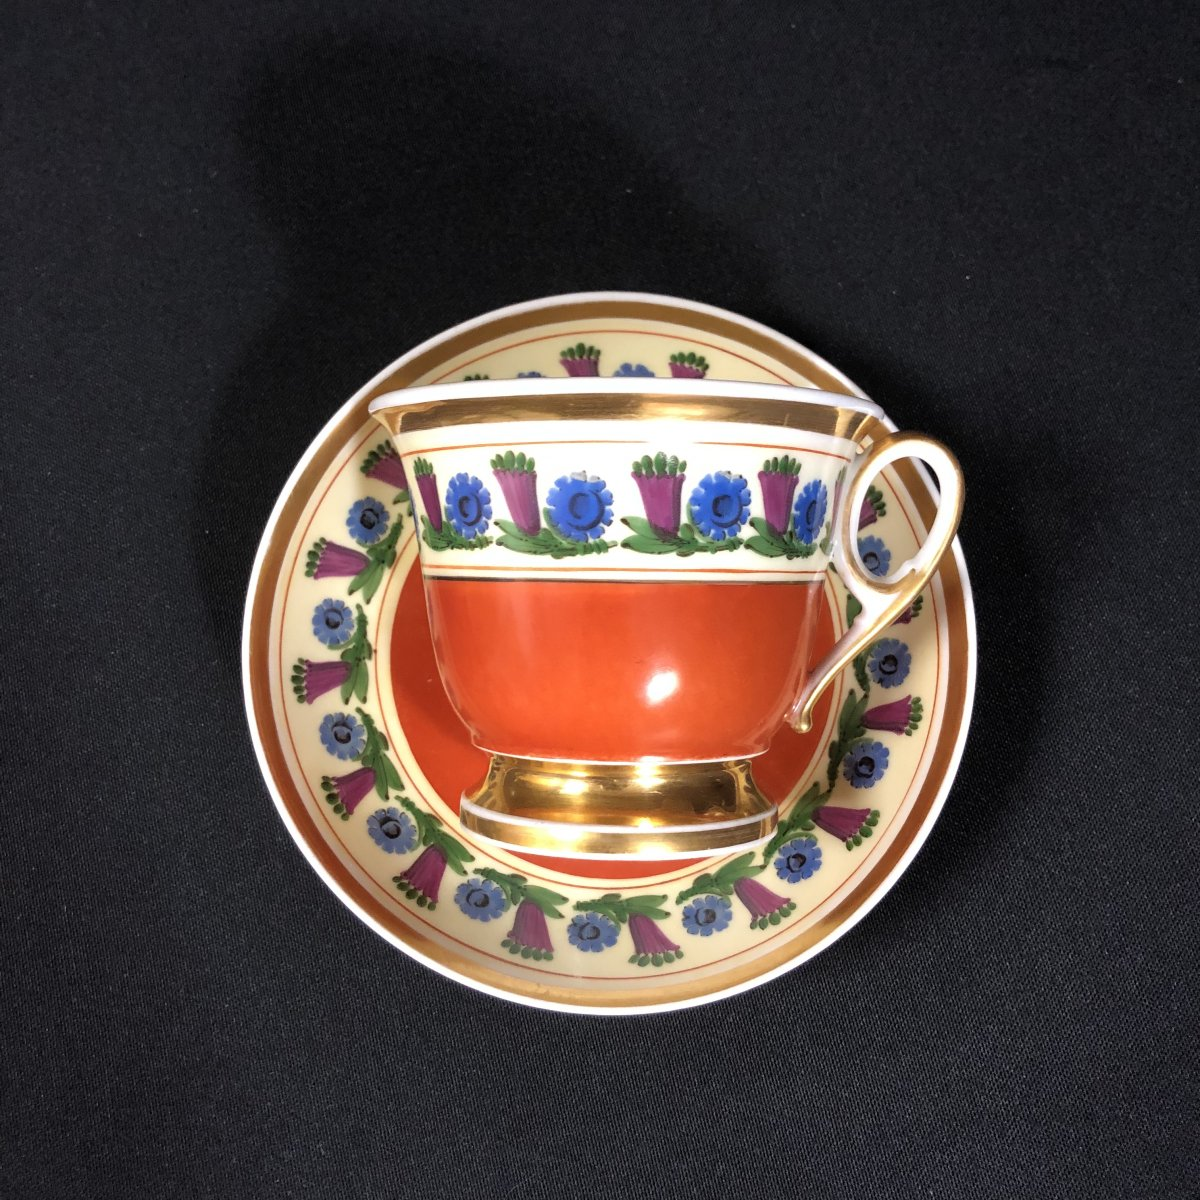 Chocolate Cup And Saucer In Paris Porcelain-photo-2